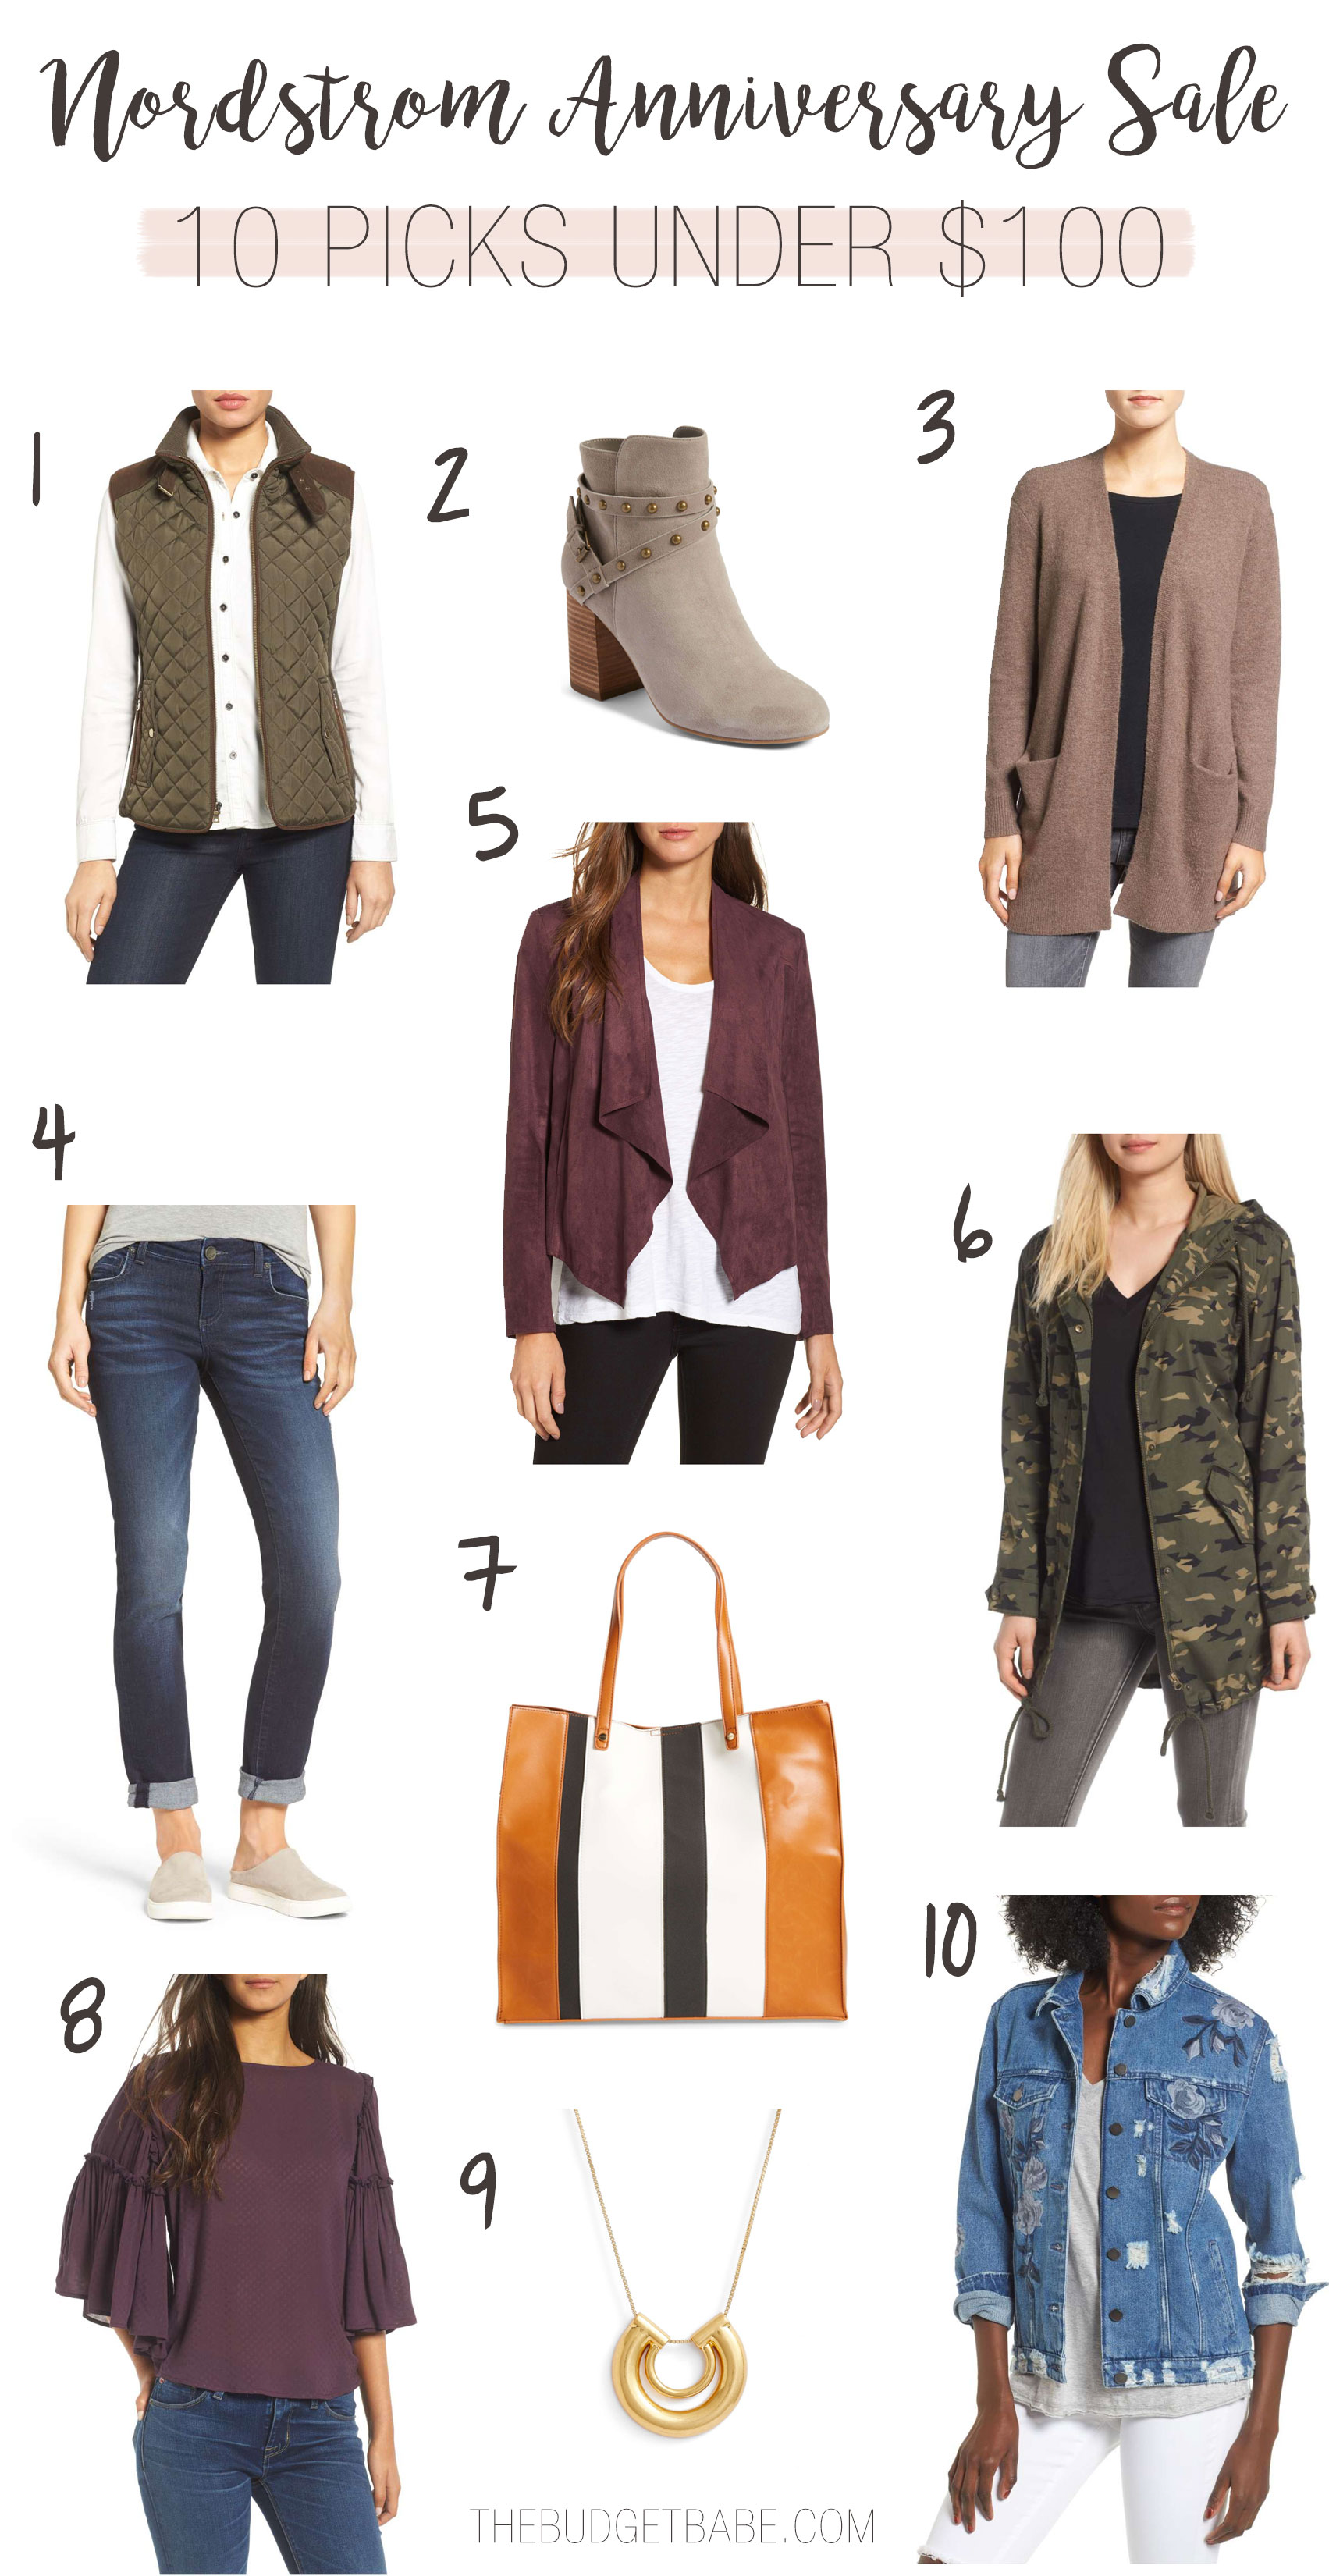 Nordstrom Anniversary Sale 2017 blog picks from The Budget Babe